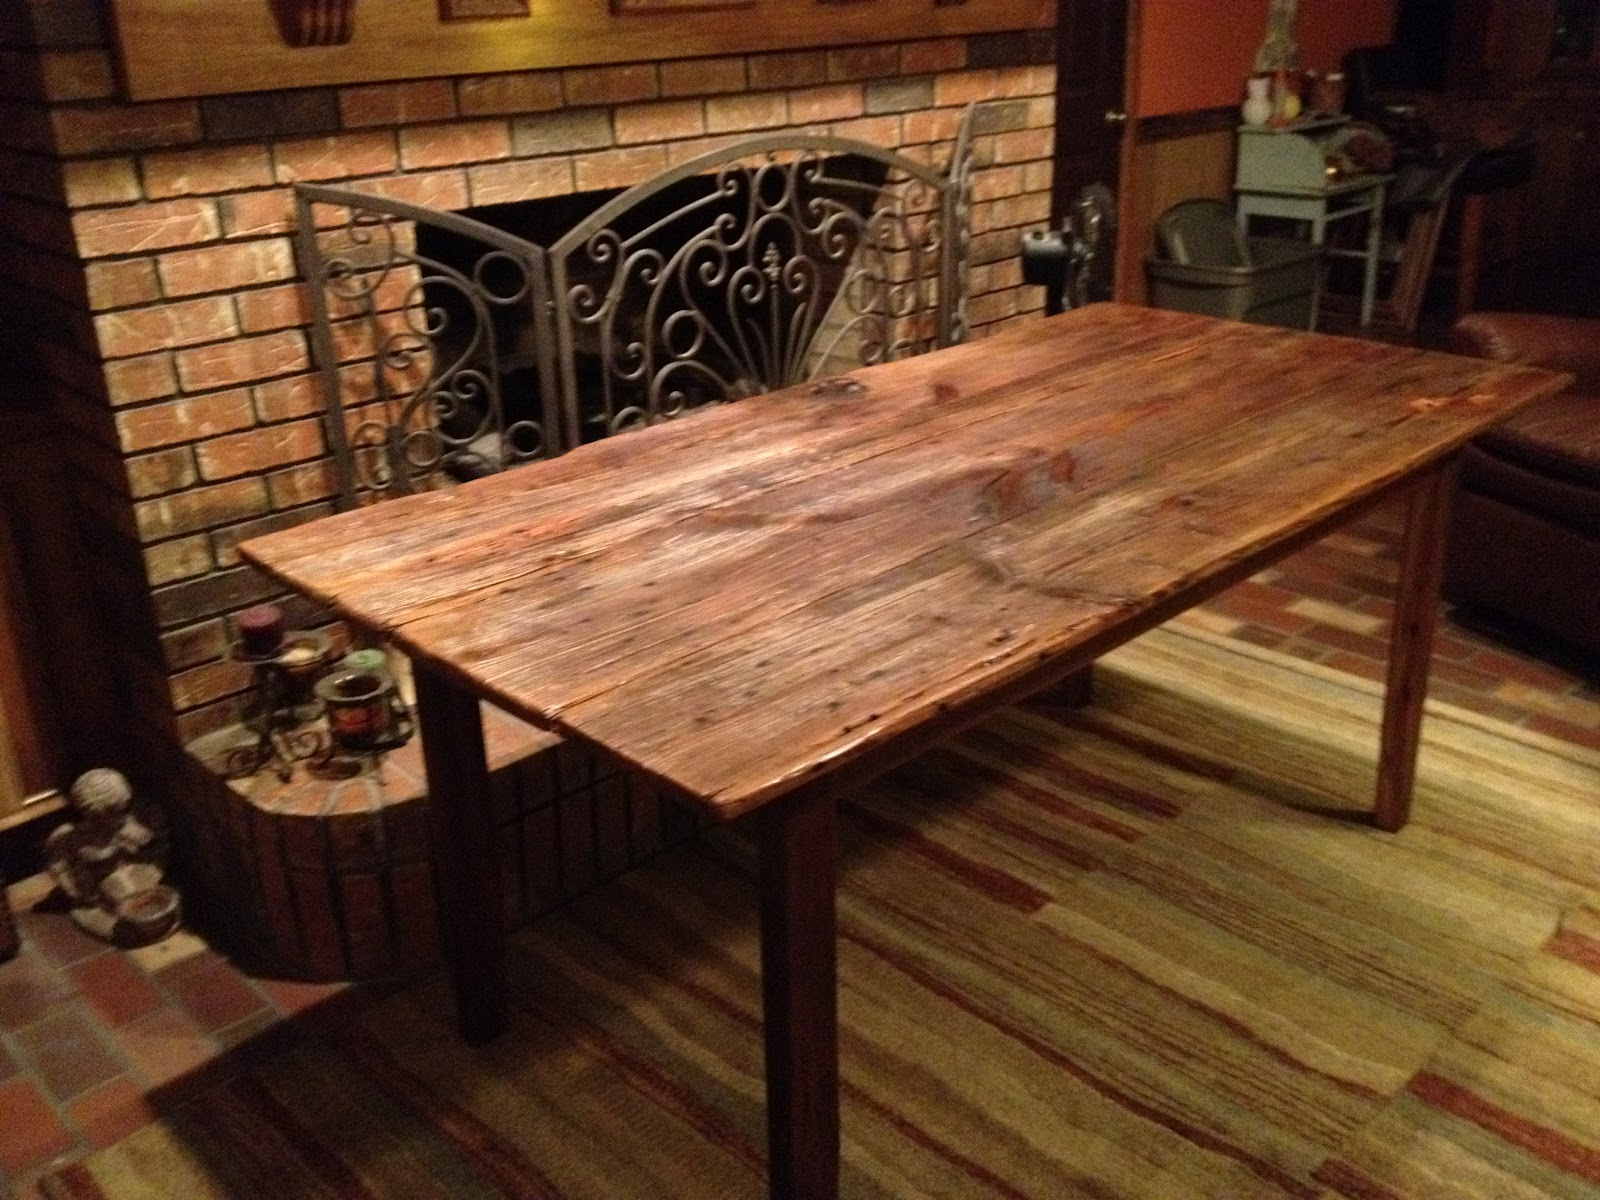 Barn Door From Family Property And Turn It Into A Dining Table For The